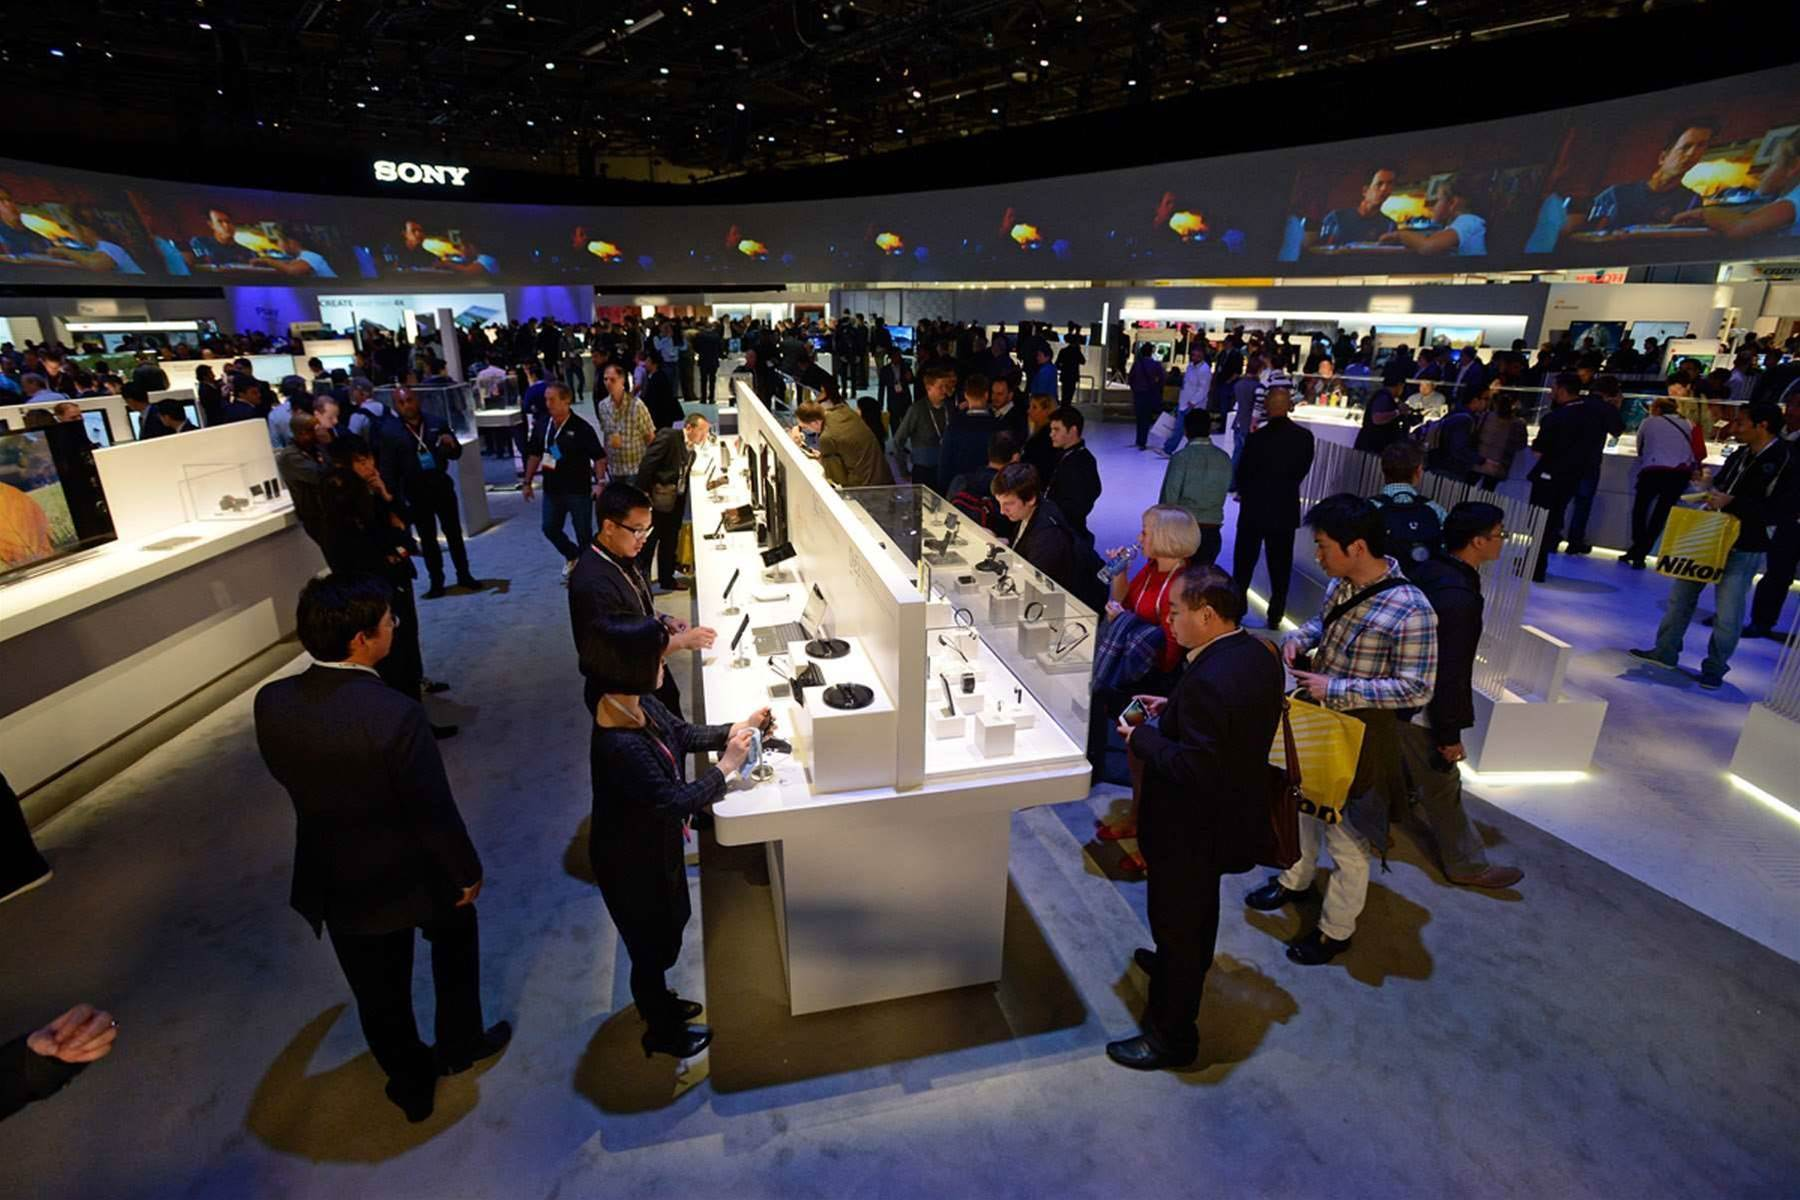 9 gadgets for work we spotted at the CES gadget show